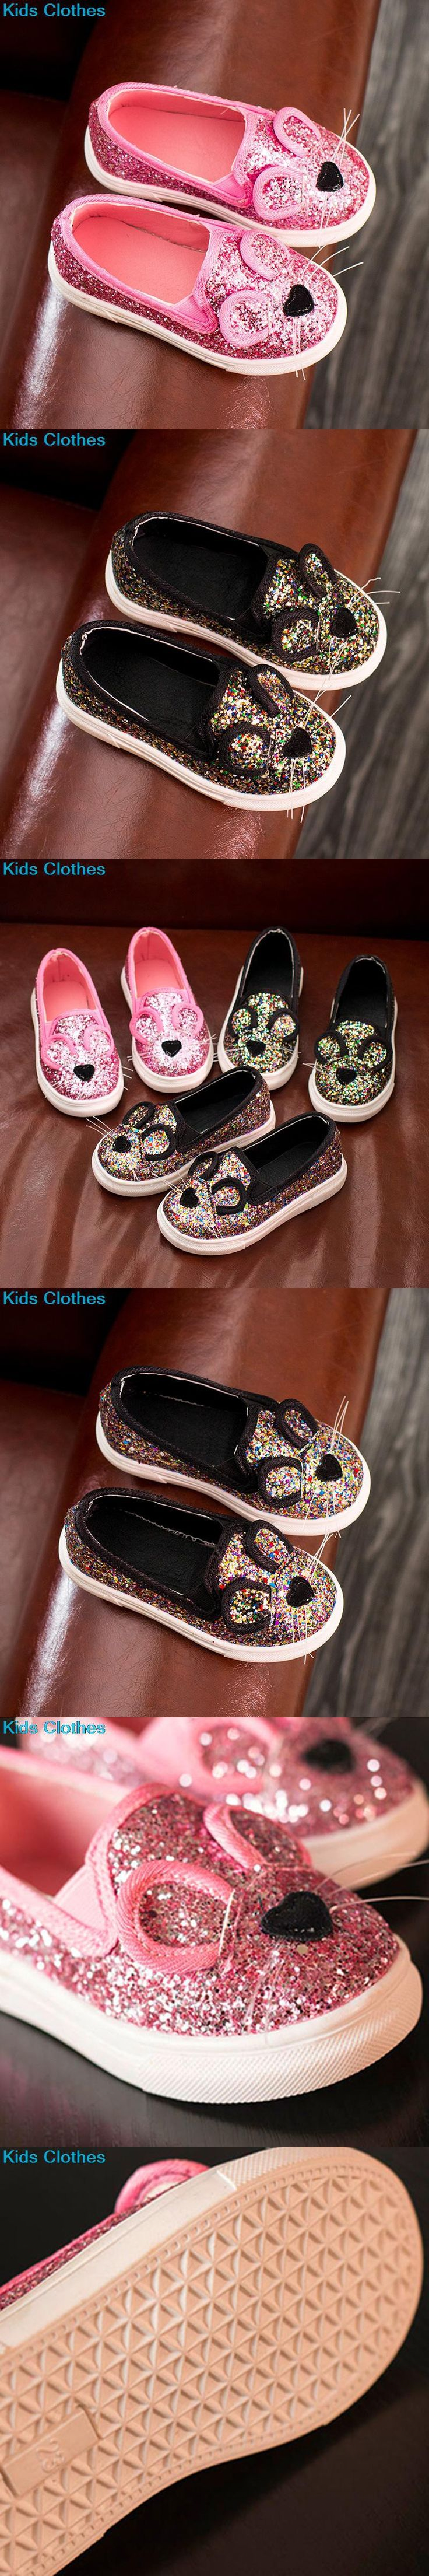 New arrive Fashion Baby Kids Sequins Cartoon Mouse Casual Shoes For Girls Chlidren Footwear size 21-30 Flats bling shoes